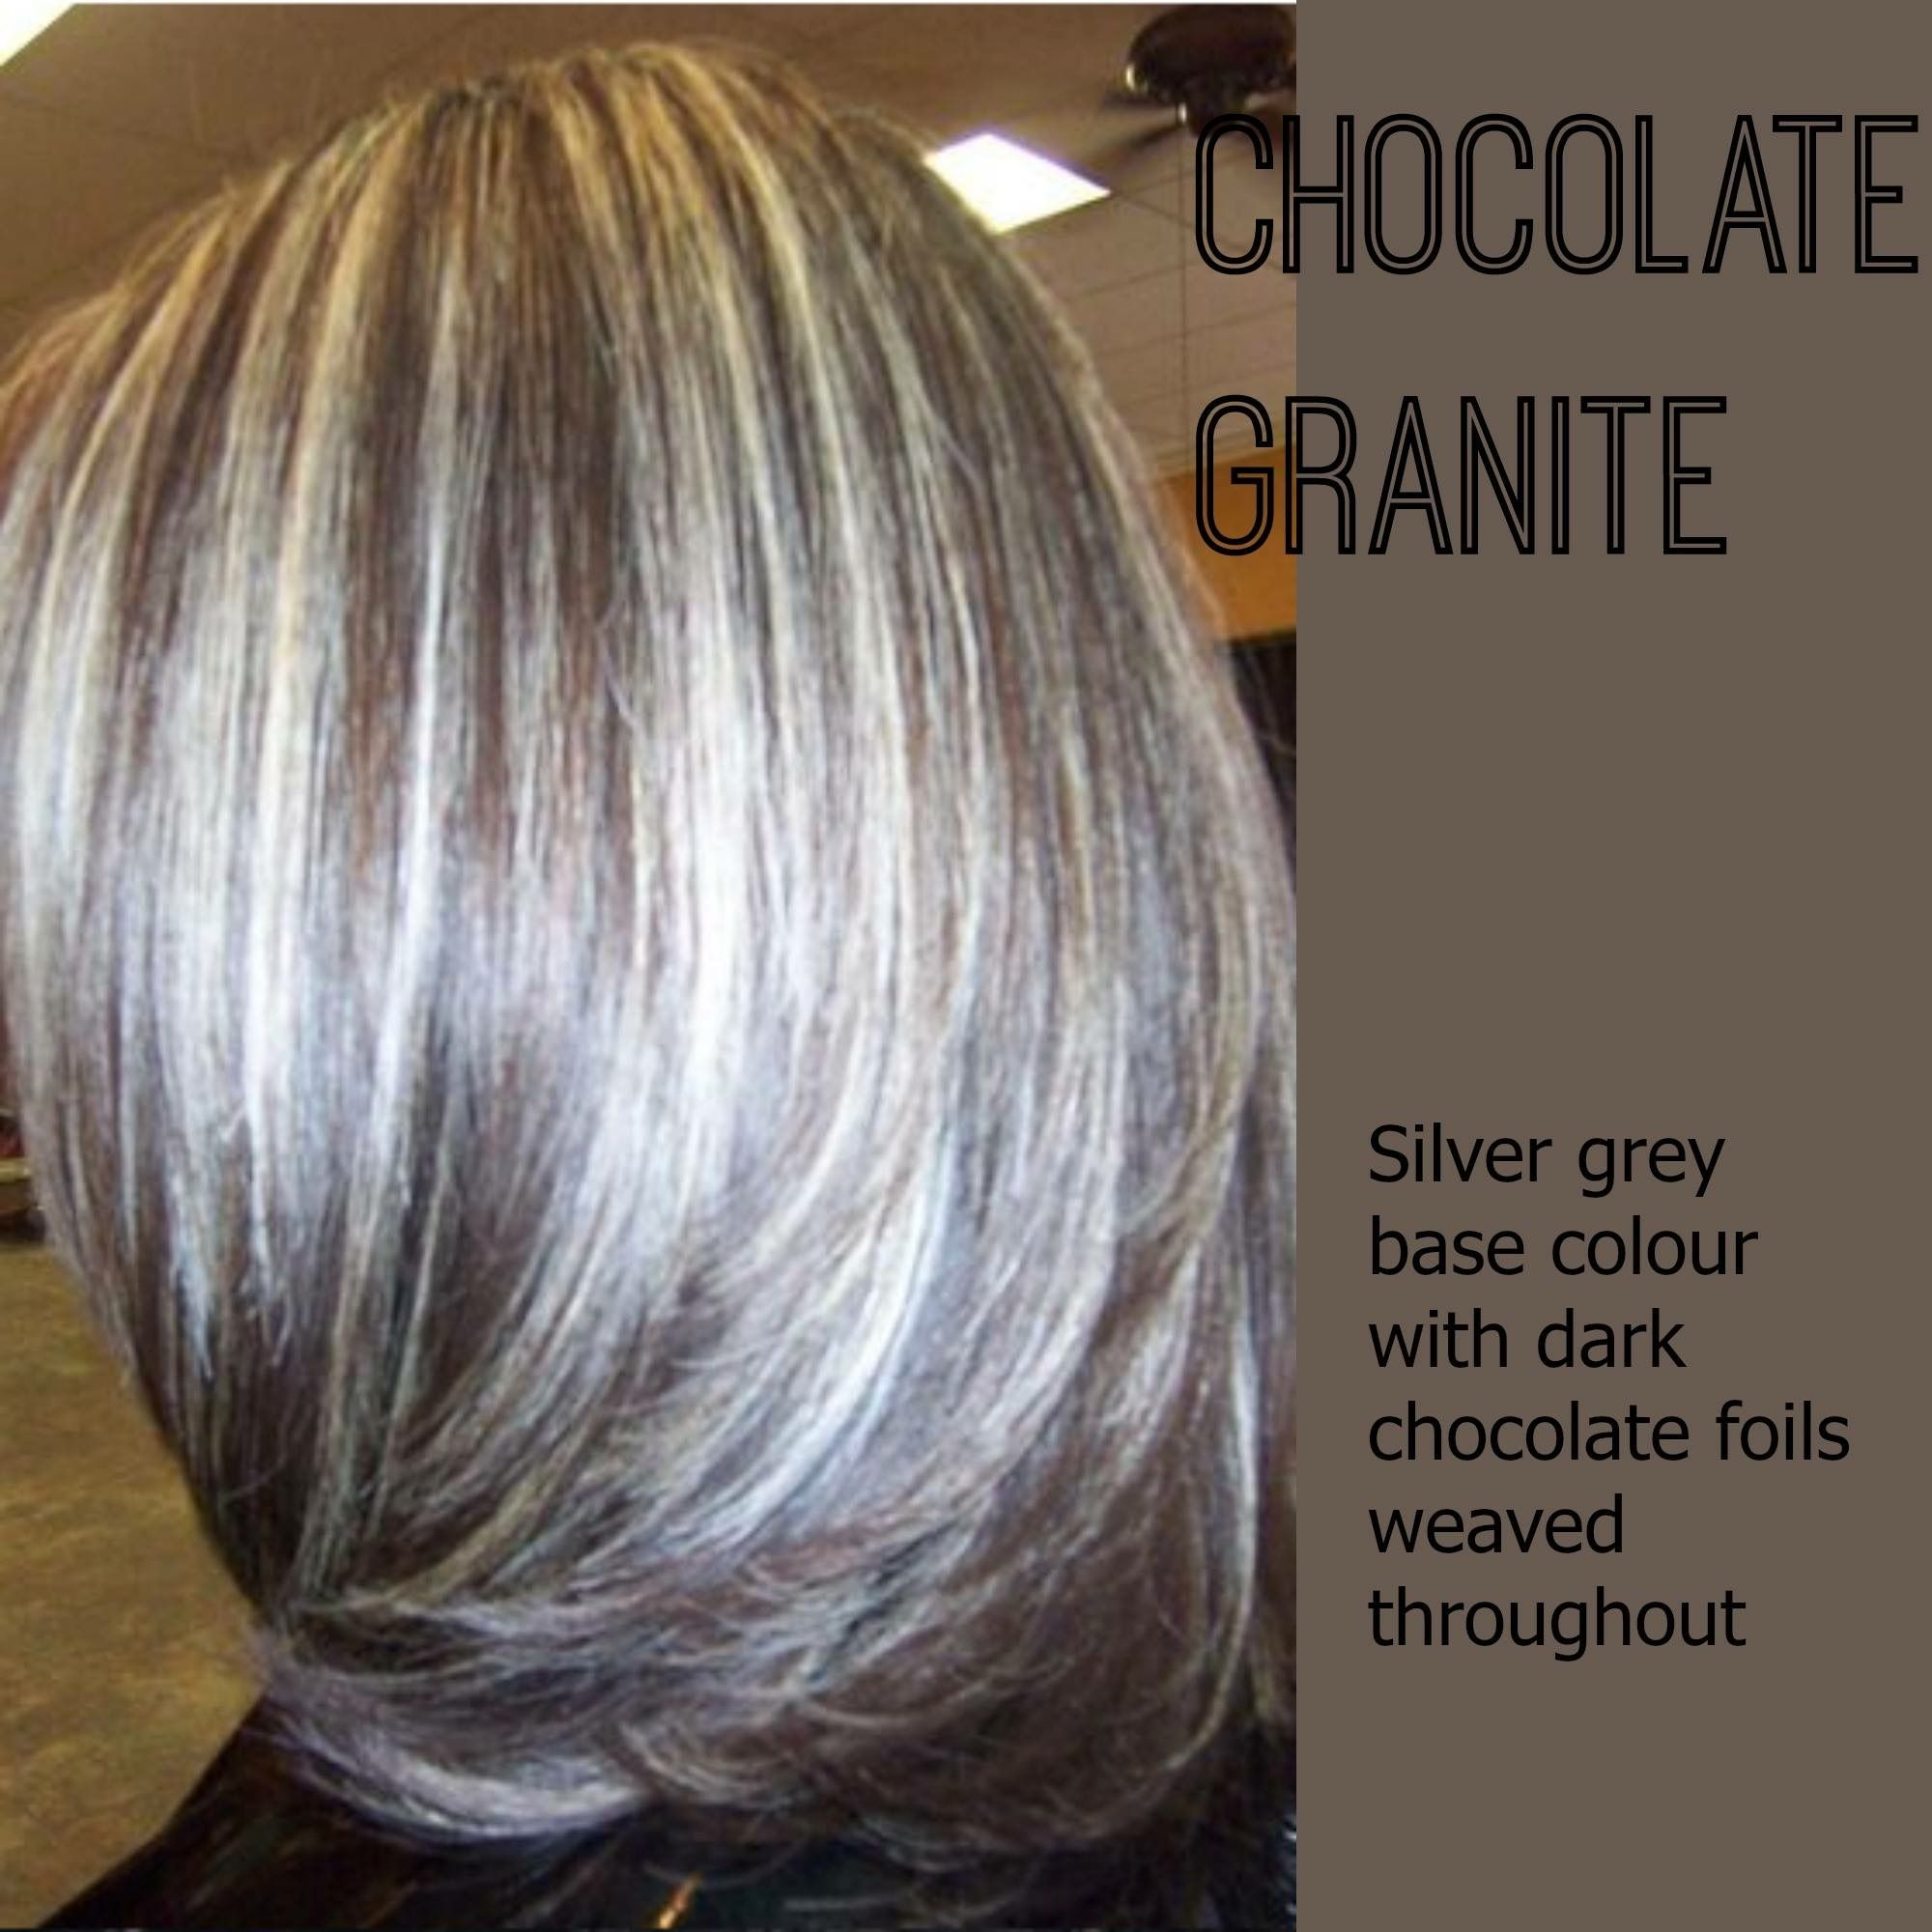 Pin by leah anderson on hair styles pinterest hair style grey resultado de imagen para transition to grey hair with highlights pmusecretfo Gallery